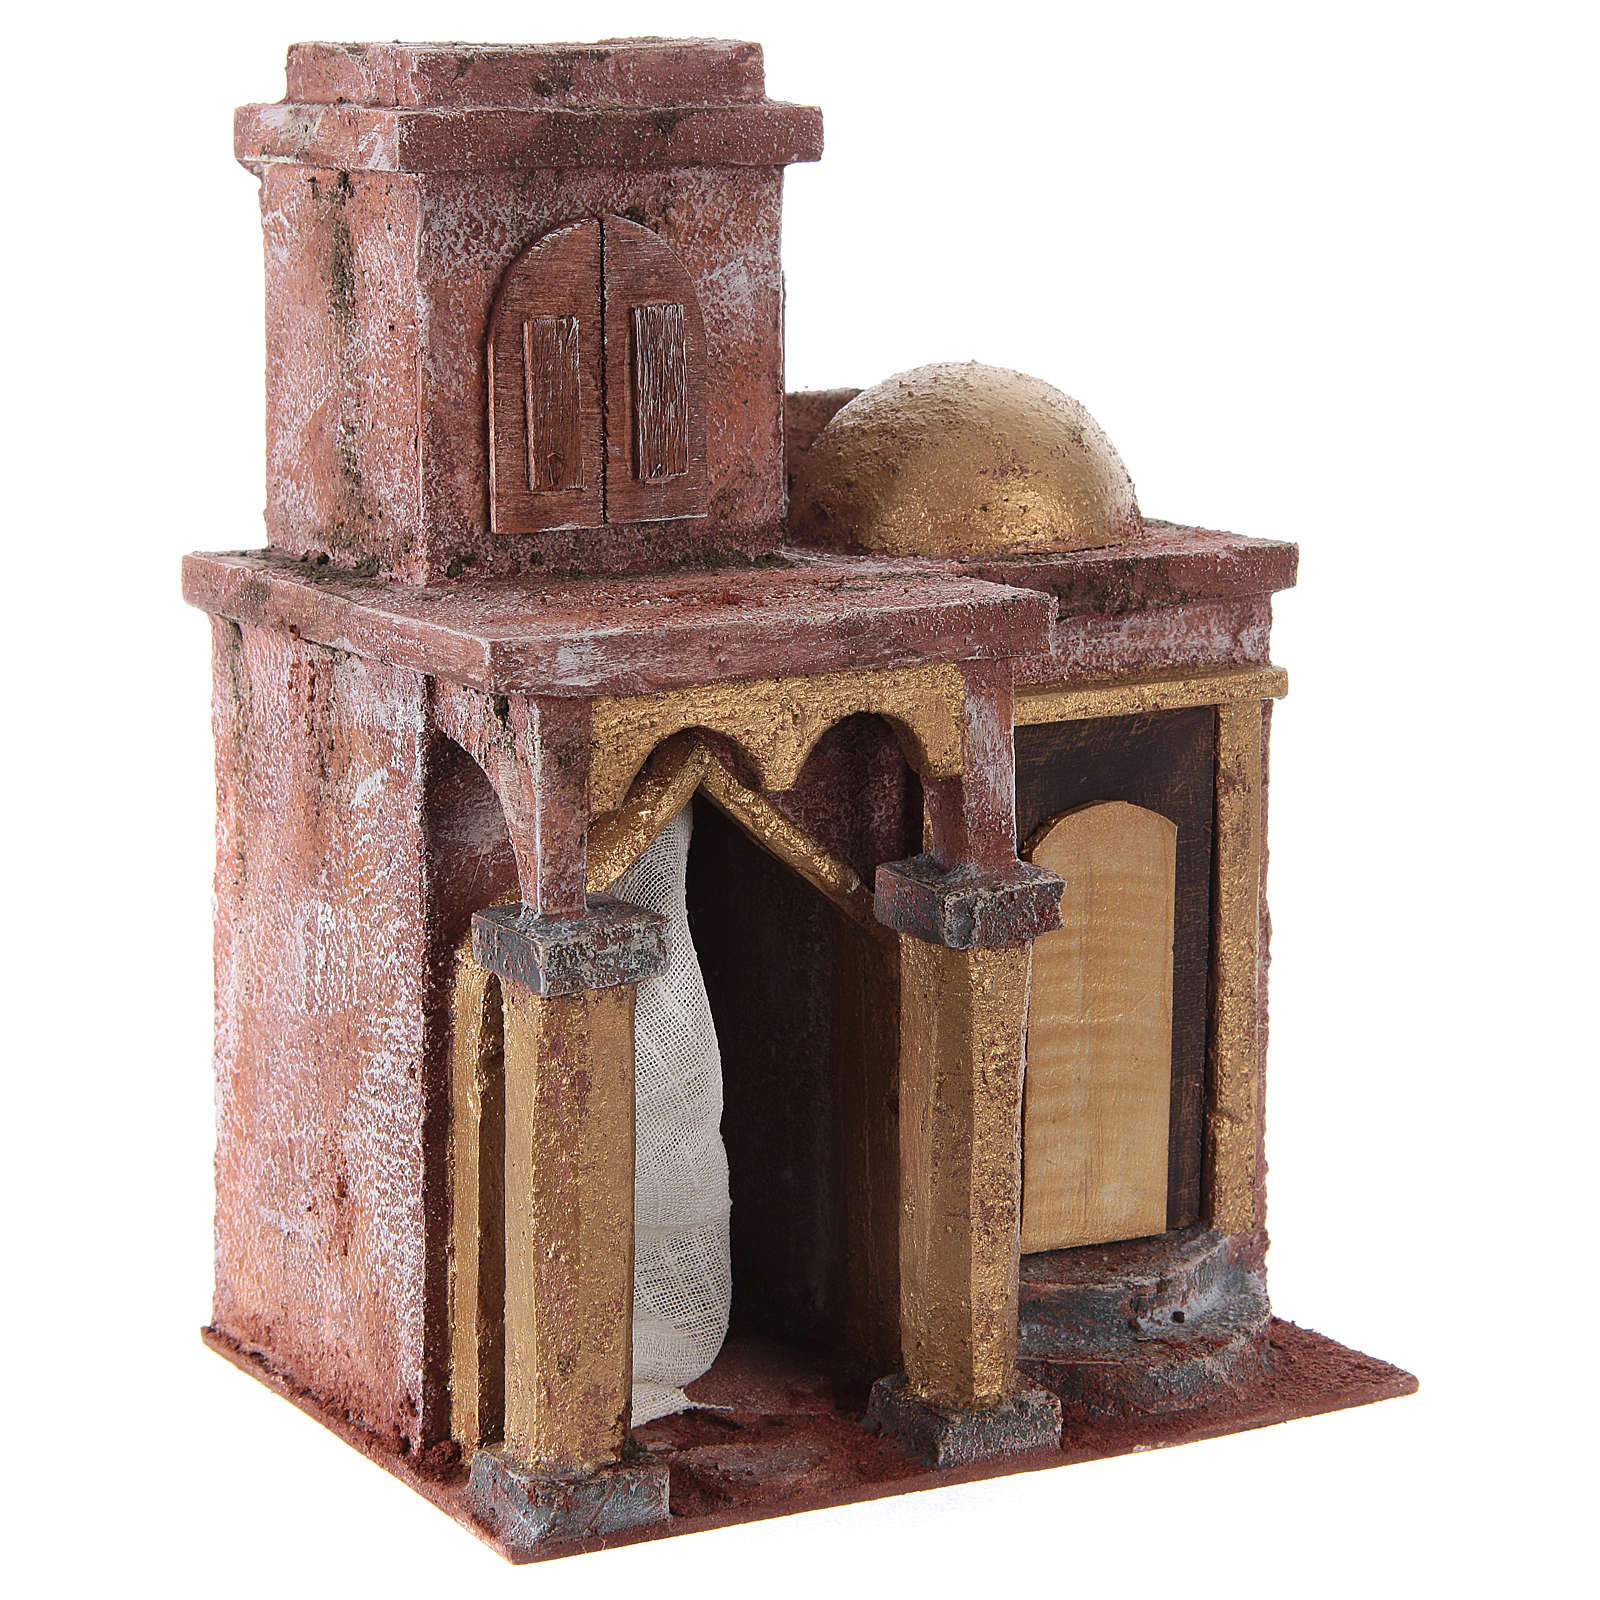 Arabian style temple with room 25x20x15 cm for nativity scene 4